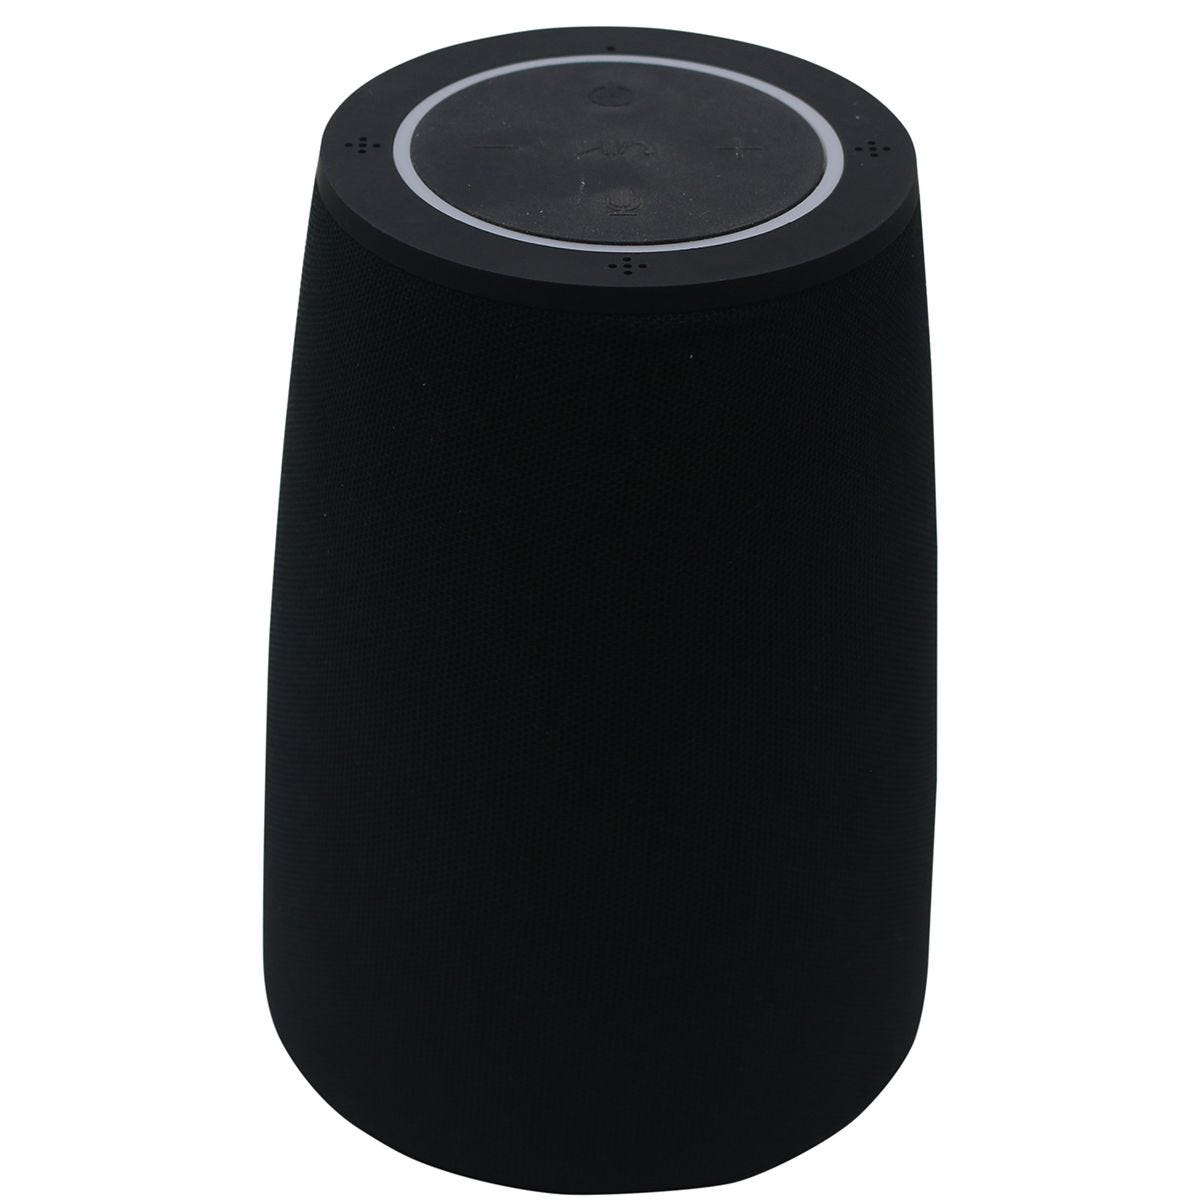 Daewoo Bluetooth Speaker with Voice Assistant Plus